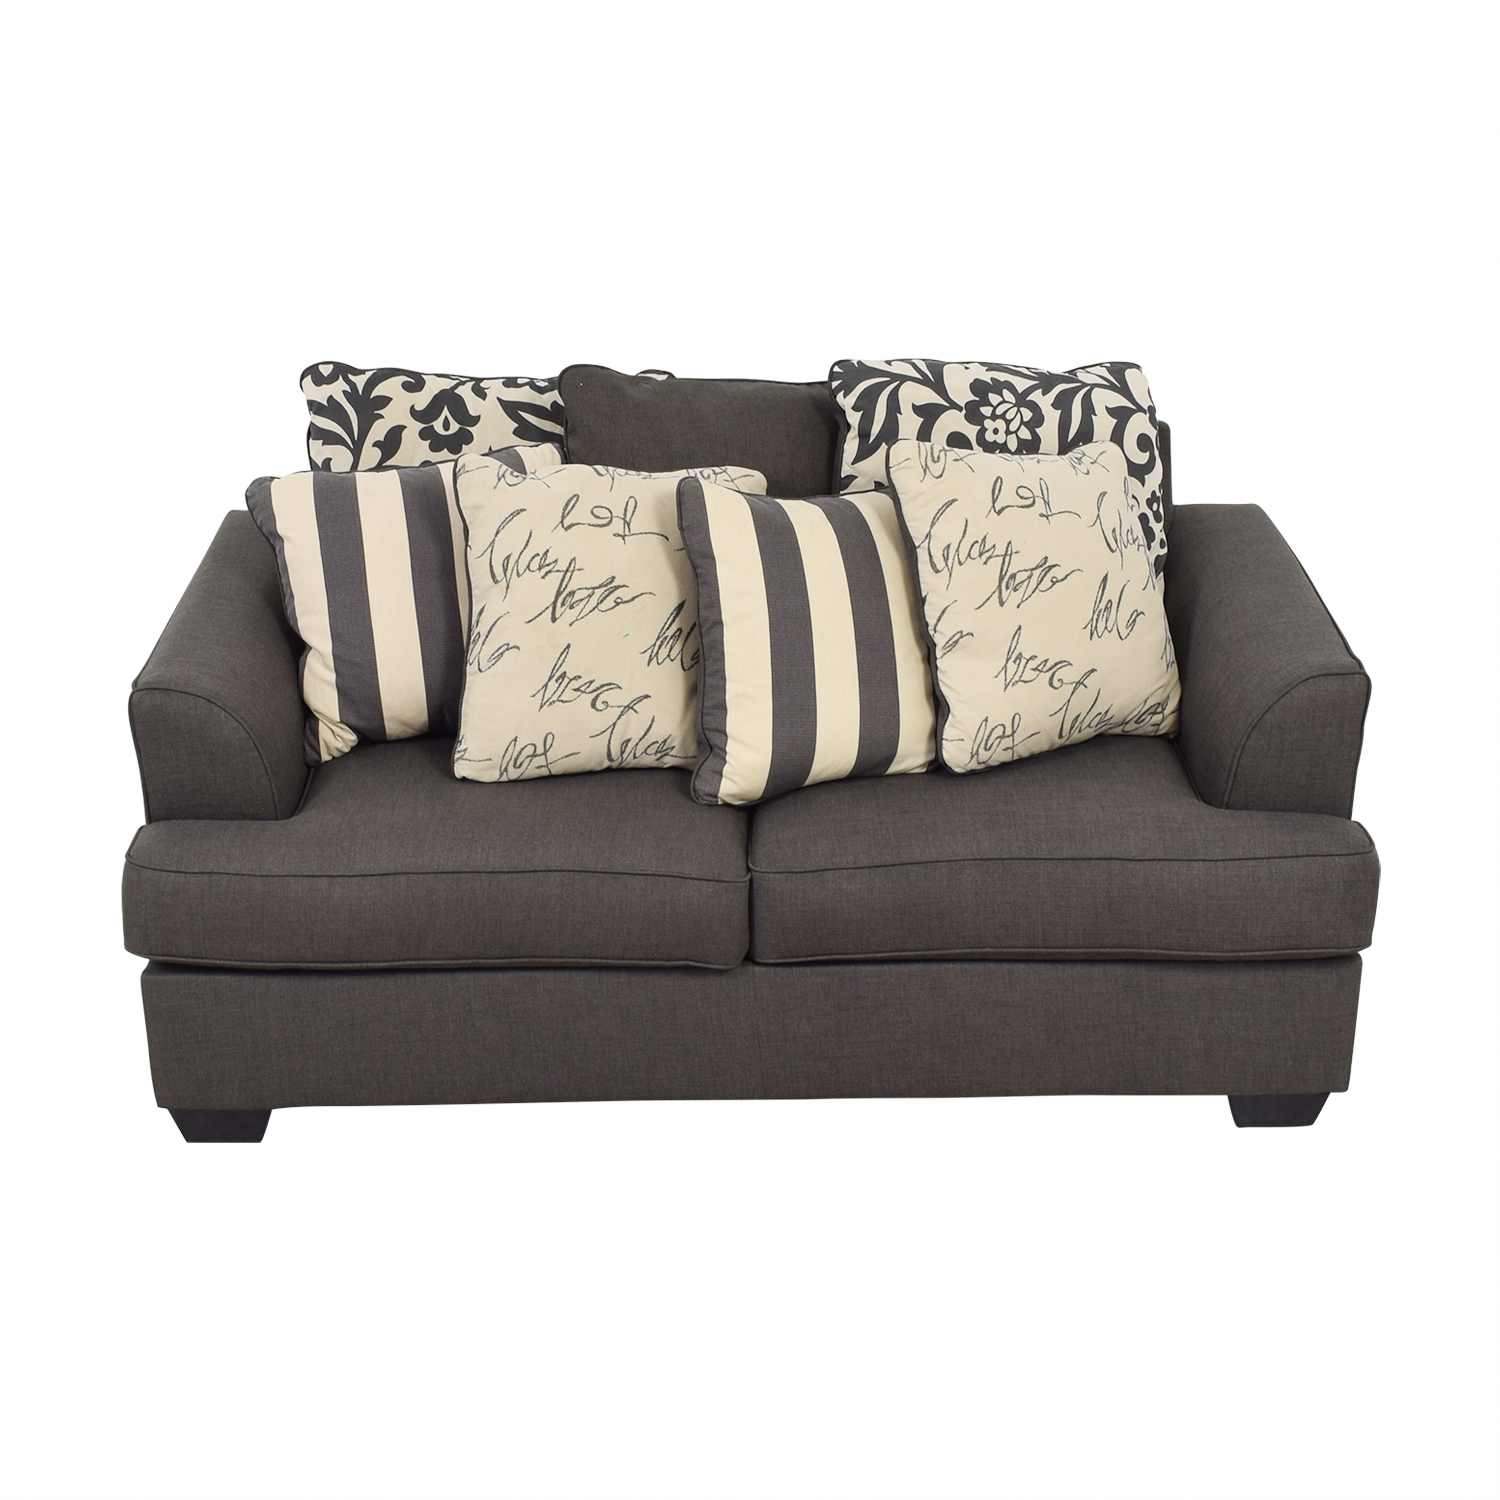 Tremendous 90 Off Ashley Furniture Ashley Furniture Levon Loveseat Sofas Beutiful Home Inspiration Cosmmahrainfo